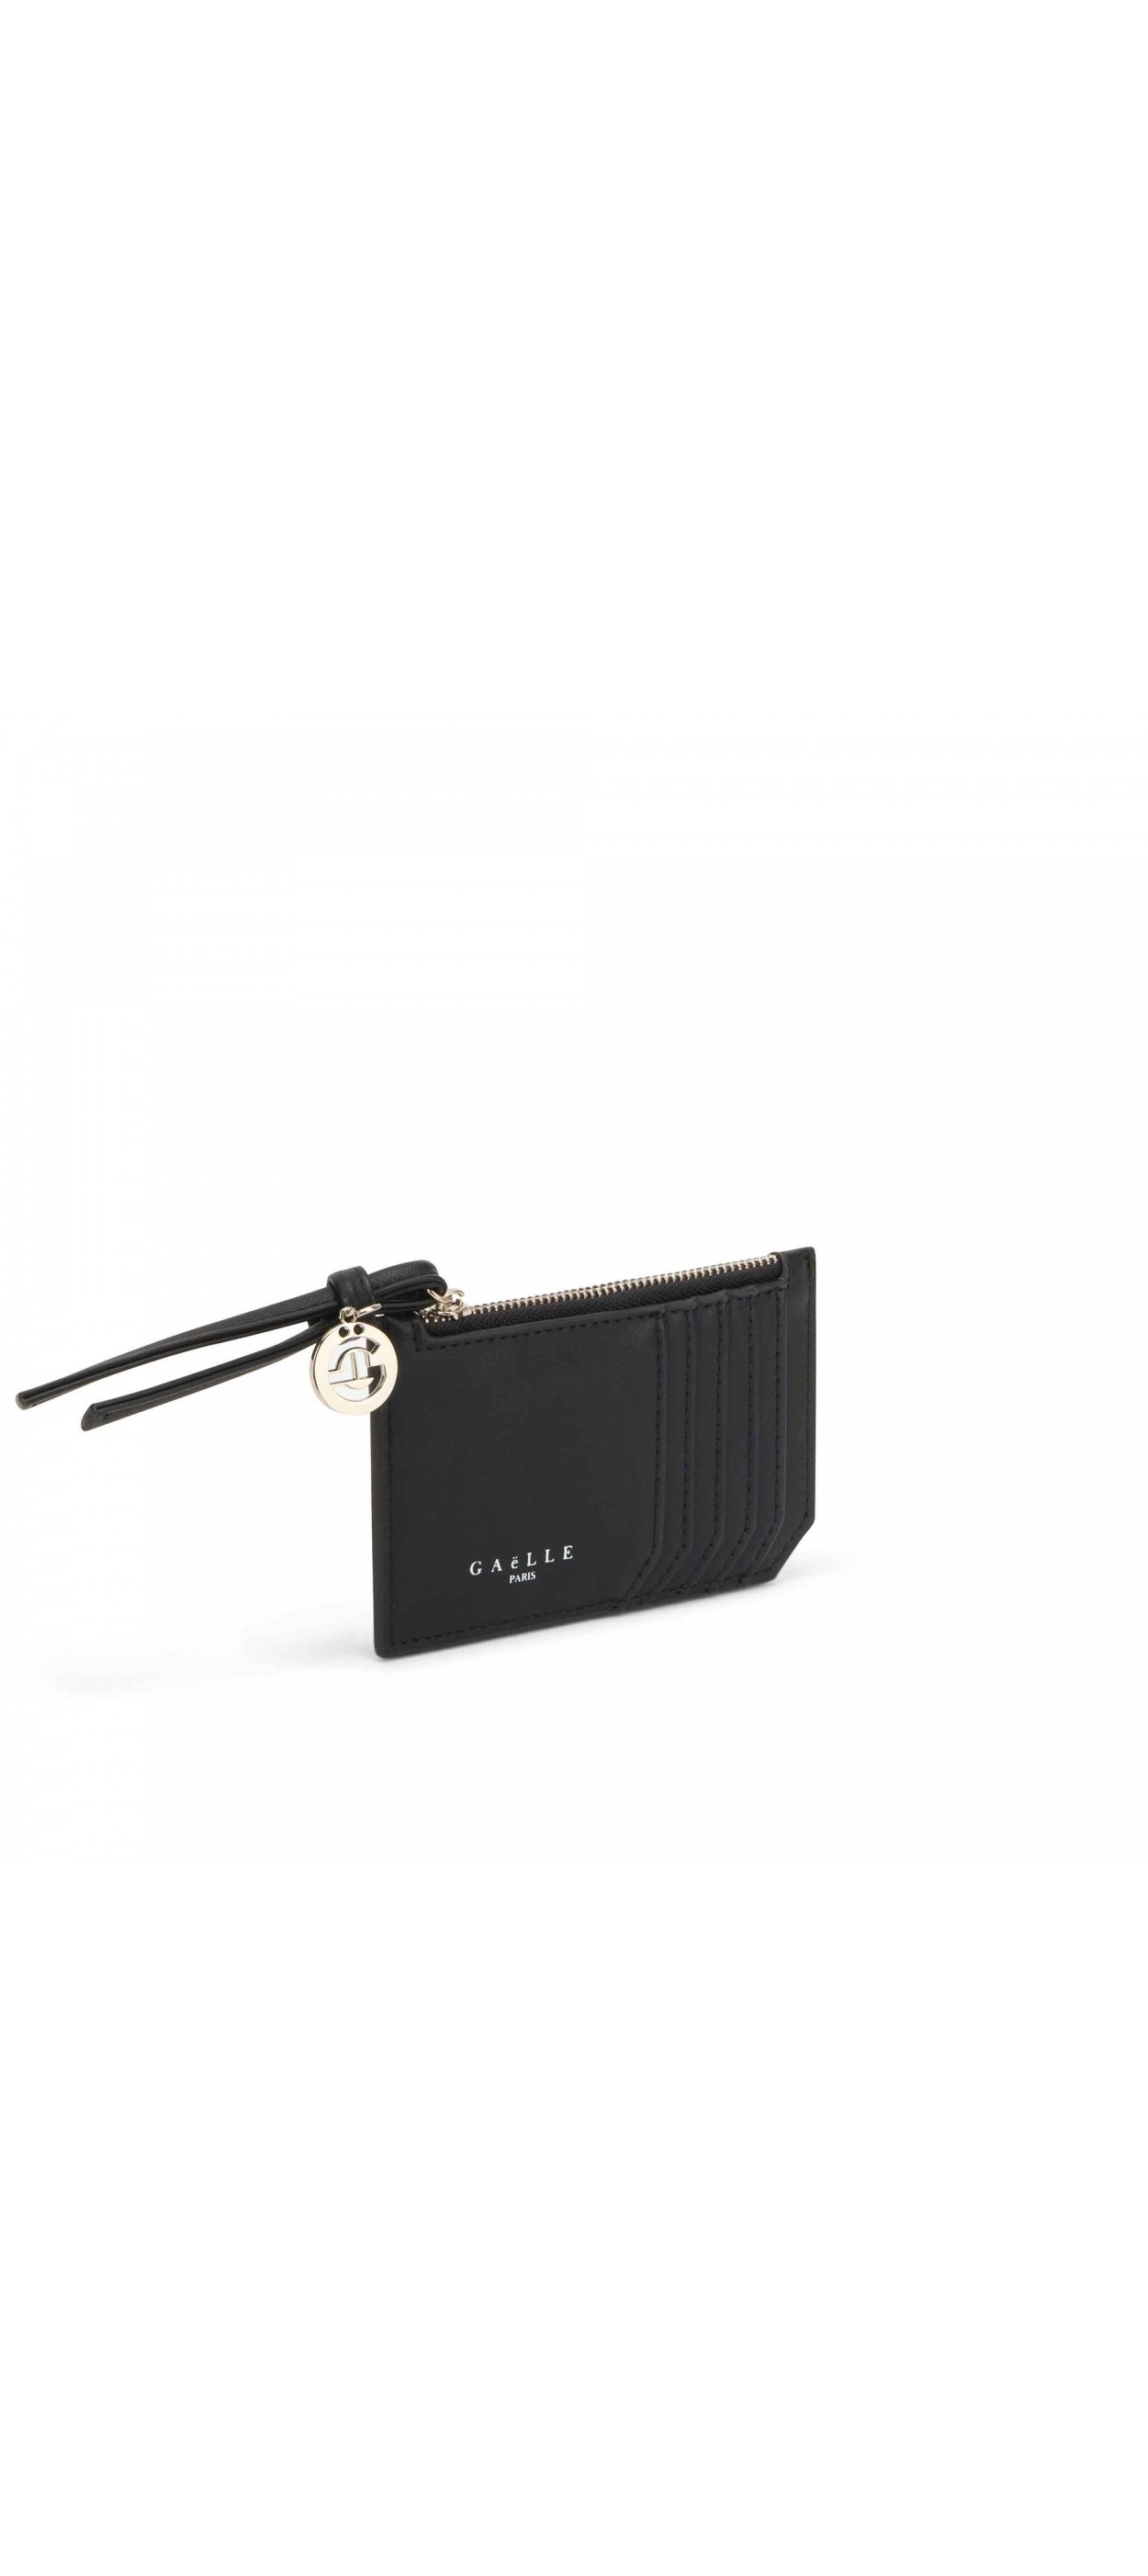 CARD HOLDER - GBDA1834 - GAELLE PARIS